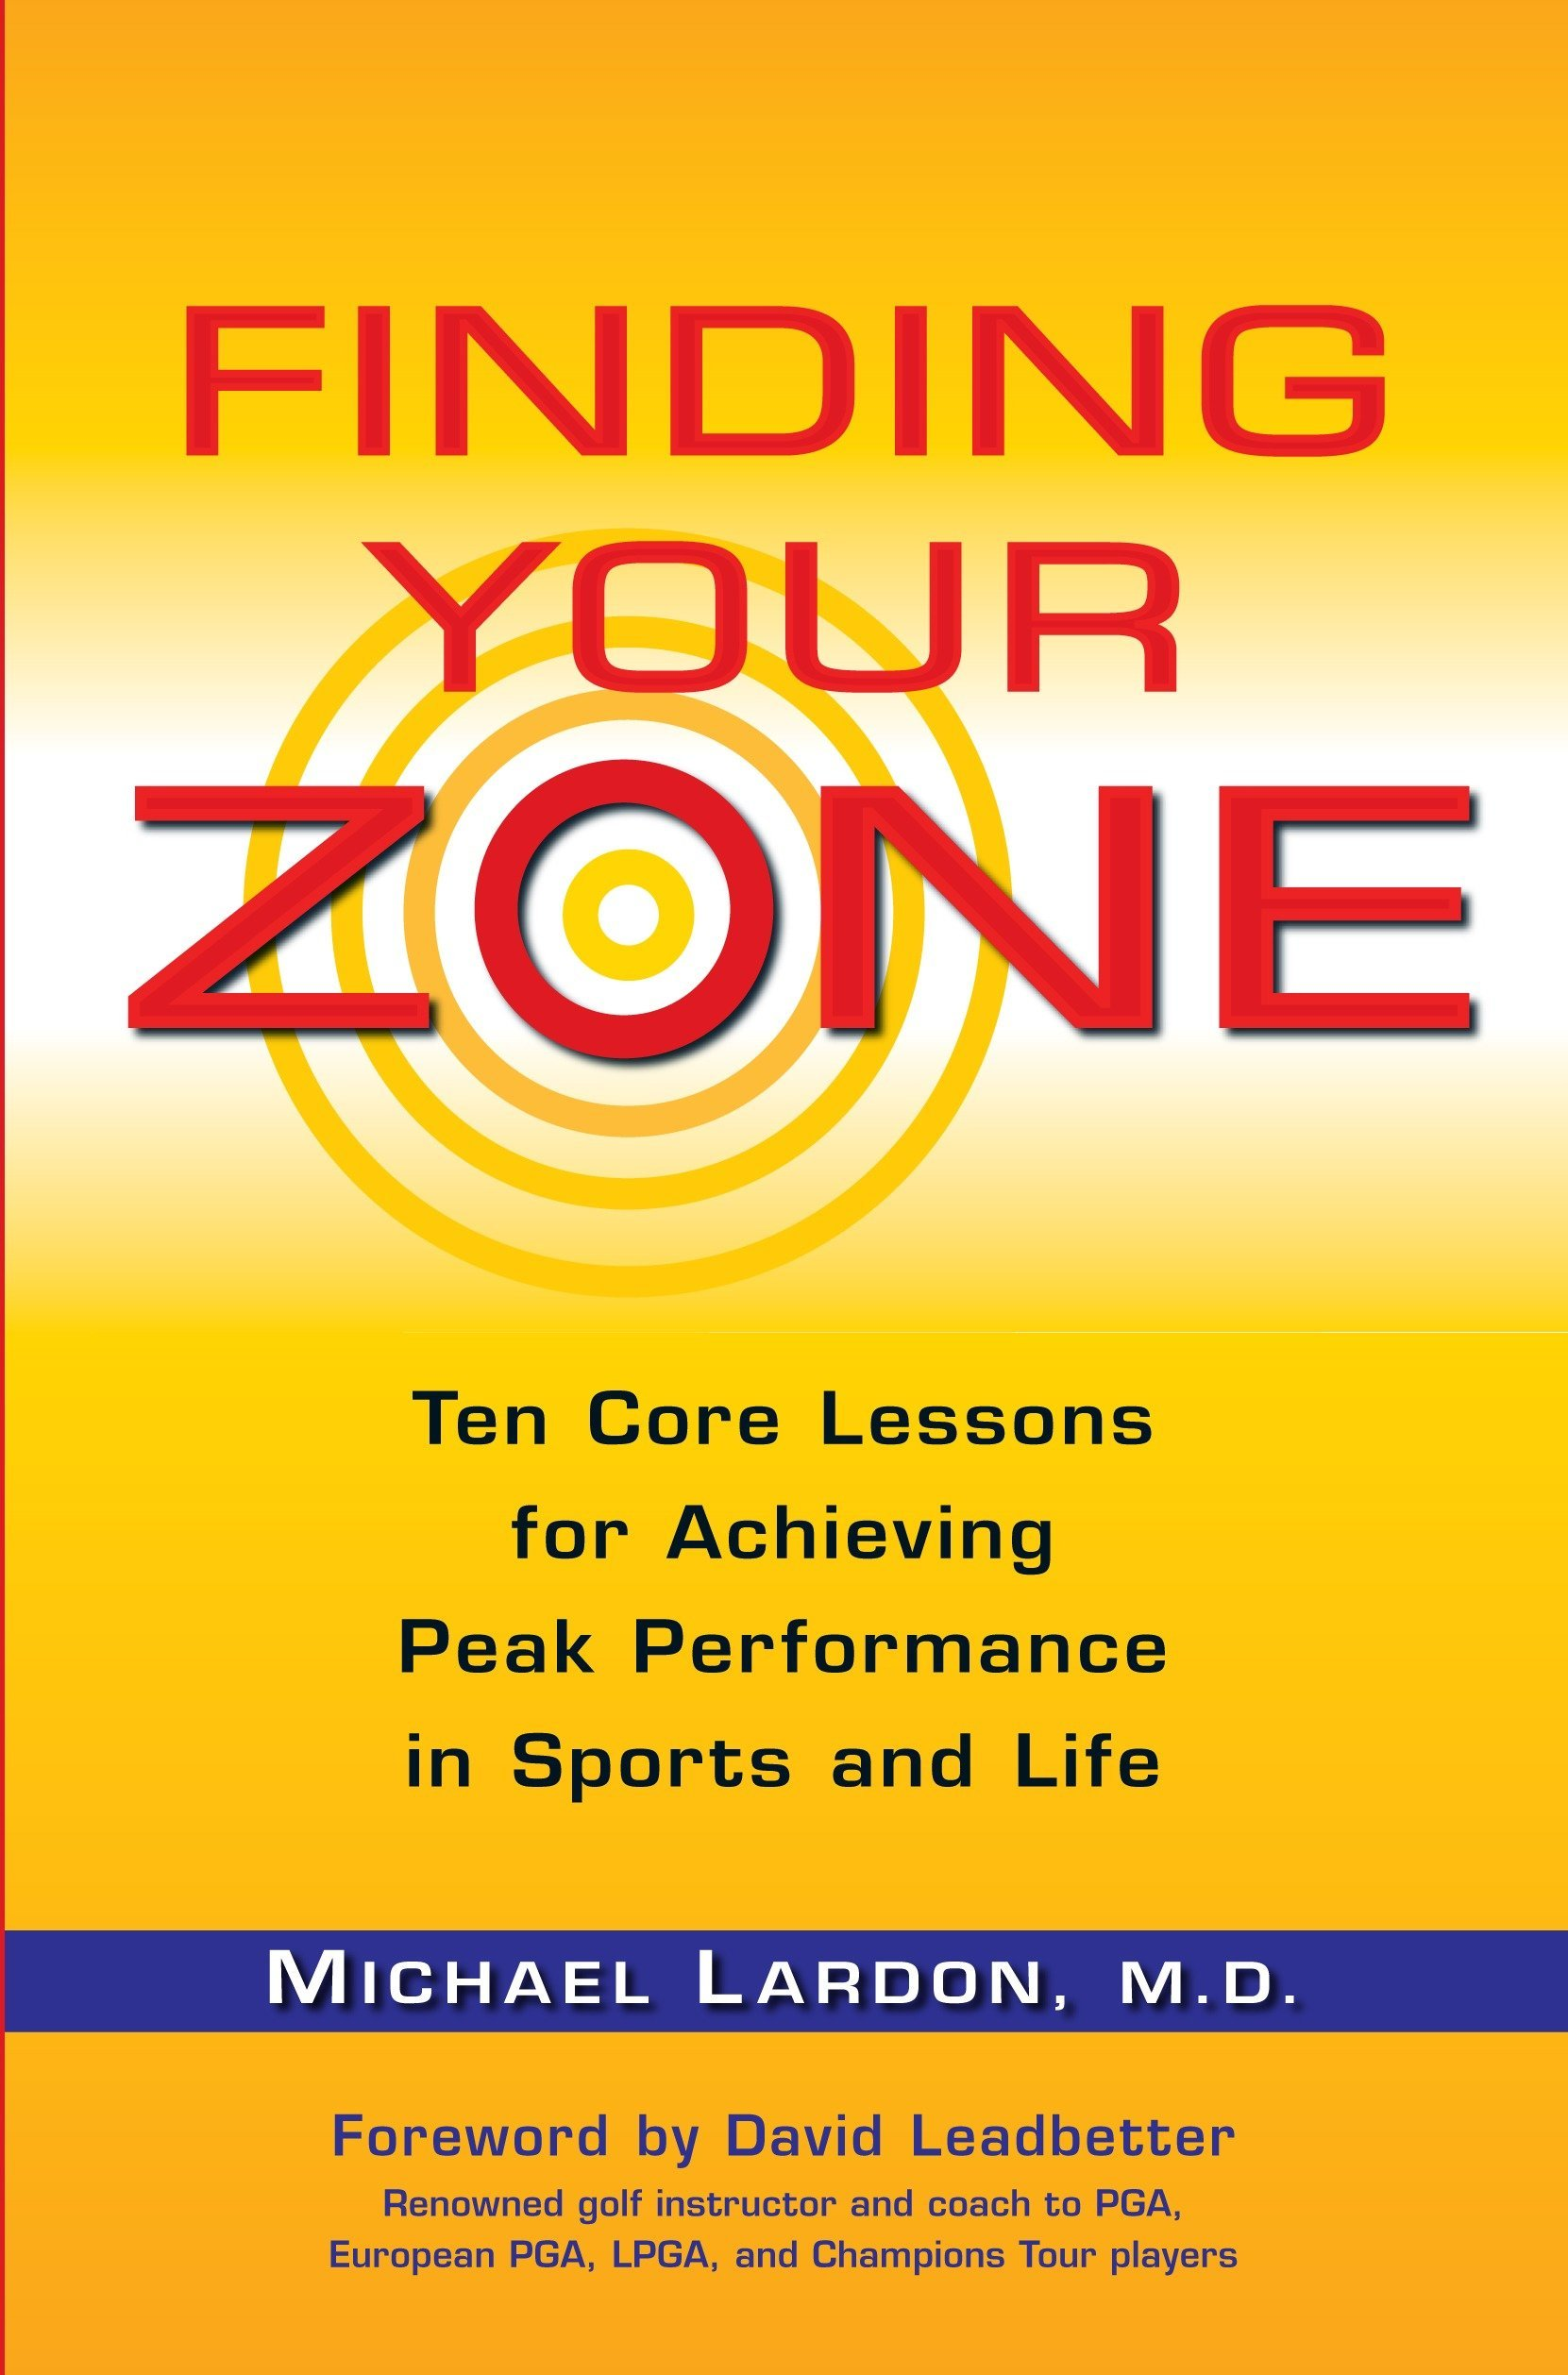 Finding Your Zone: Ten Core Lessons for Achieving Peak Performance in  Sports and Life: Michael Lardon, David Leadbetter: 9780399534270:  Amazon.com: Books